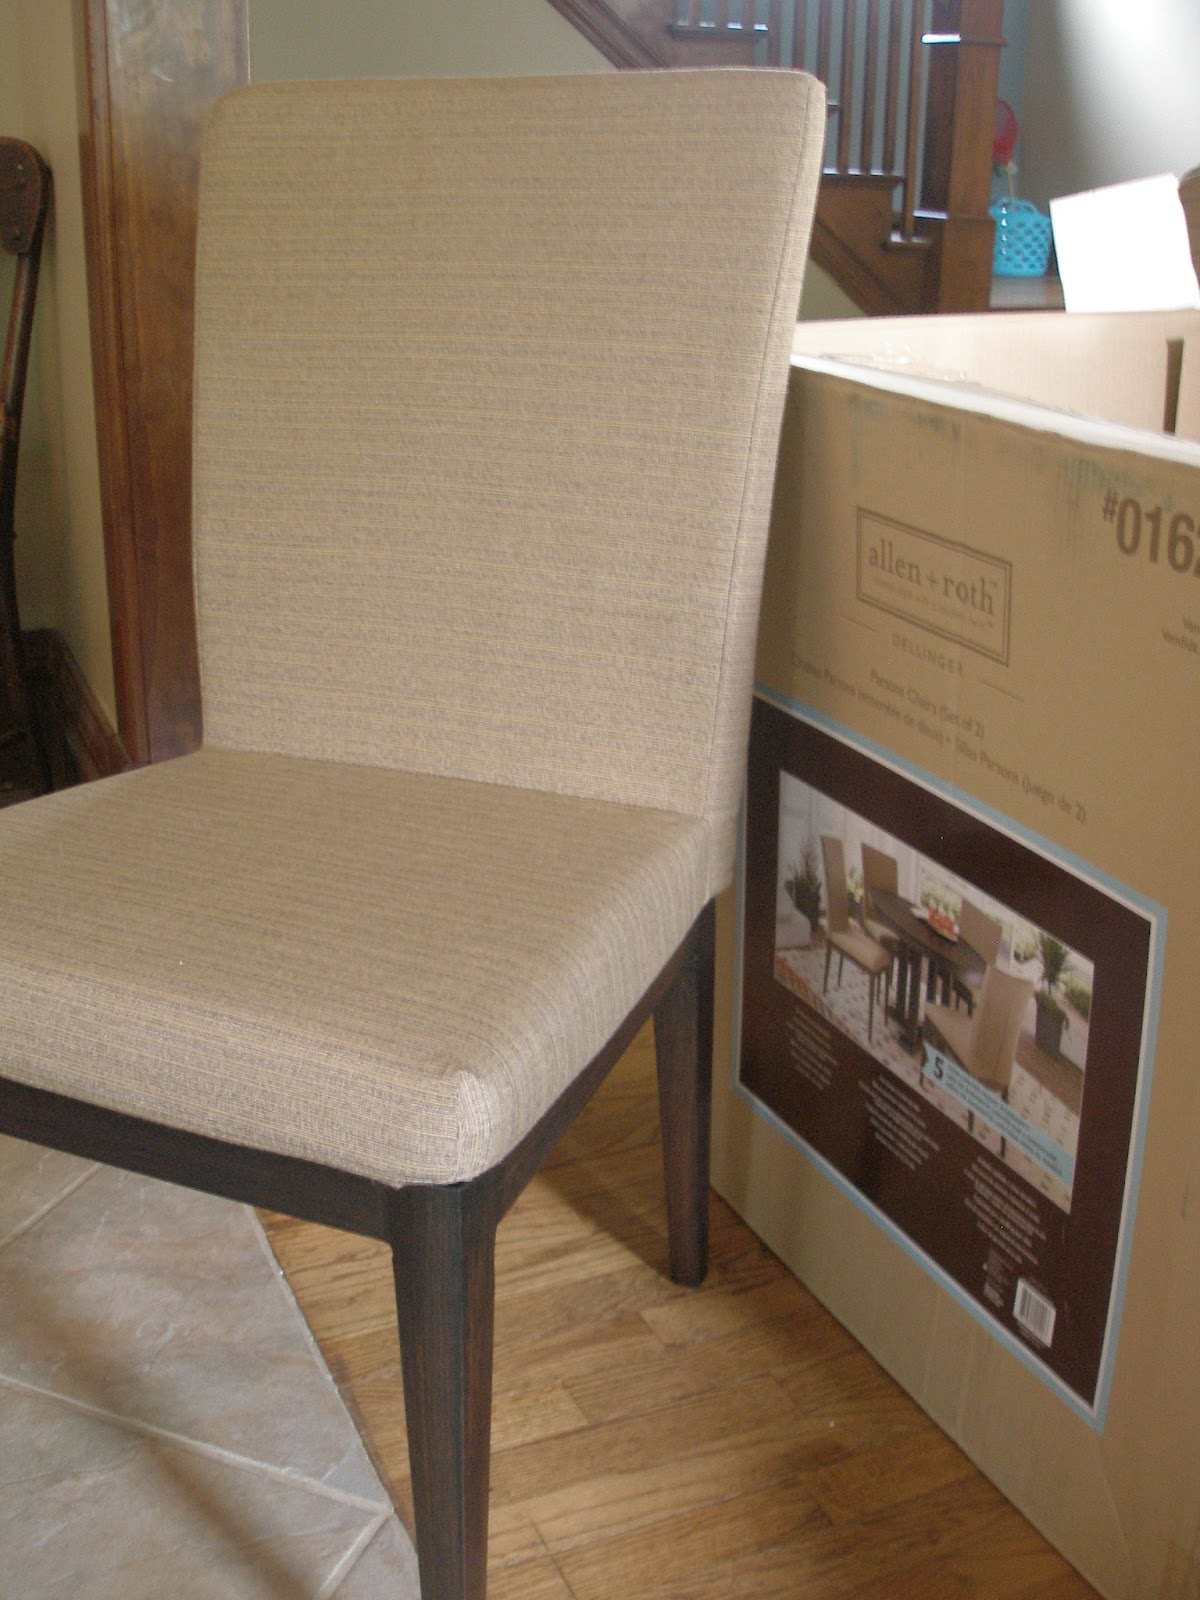 Super Savings Lowe s Clearance Indoor Outdoor Parsons Chairs